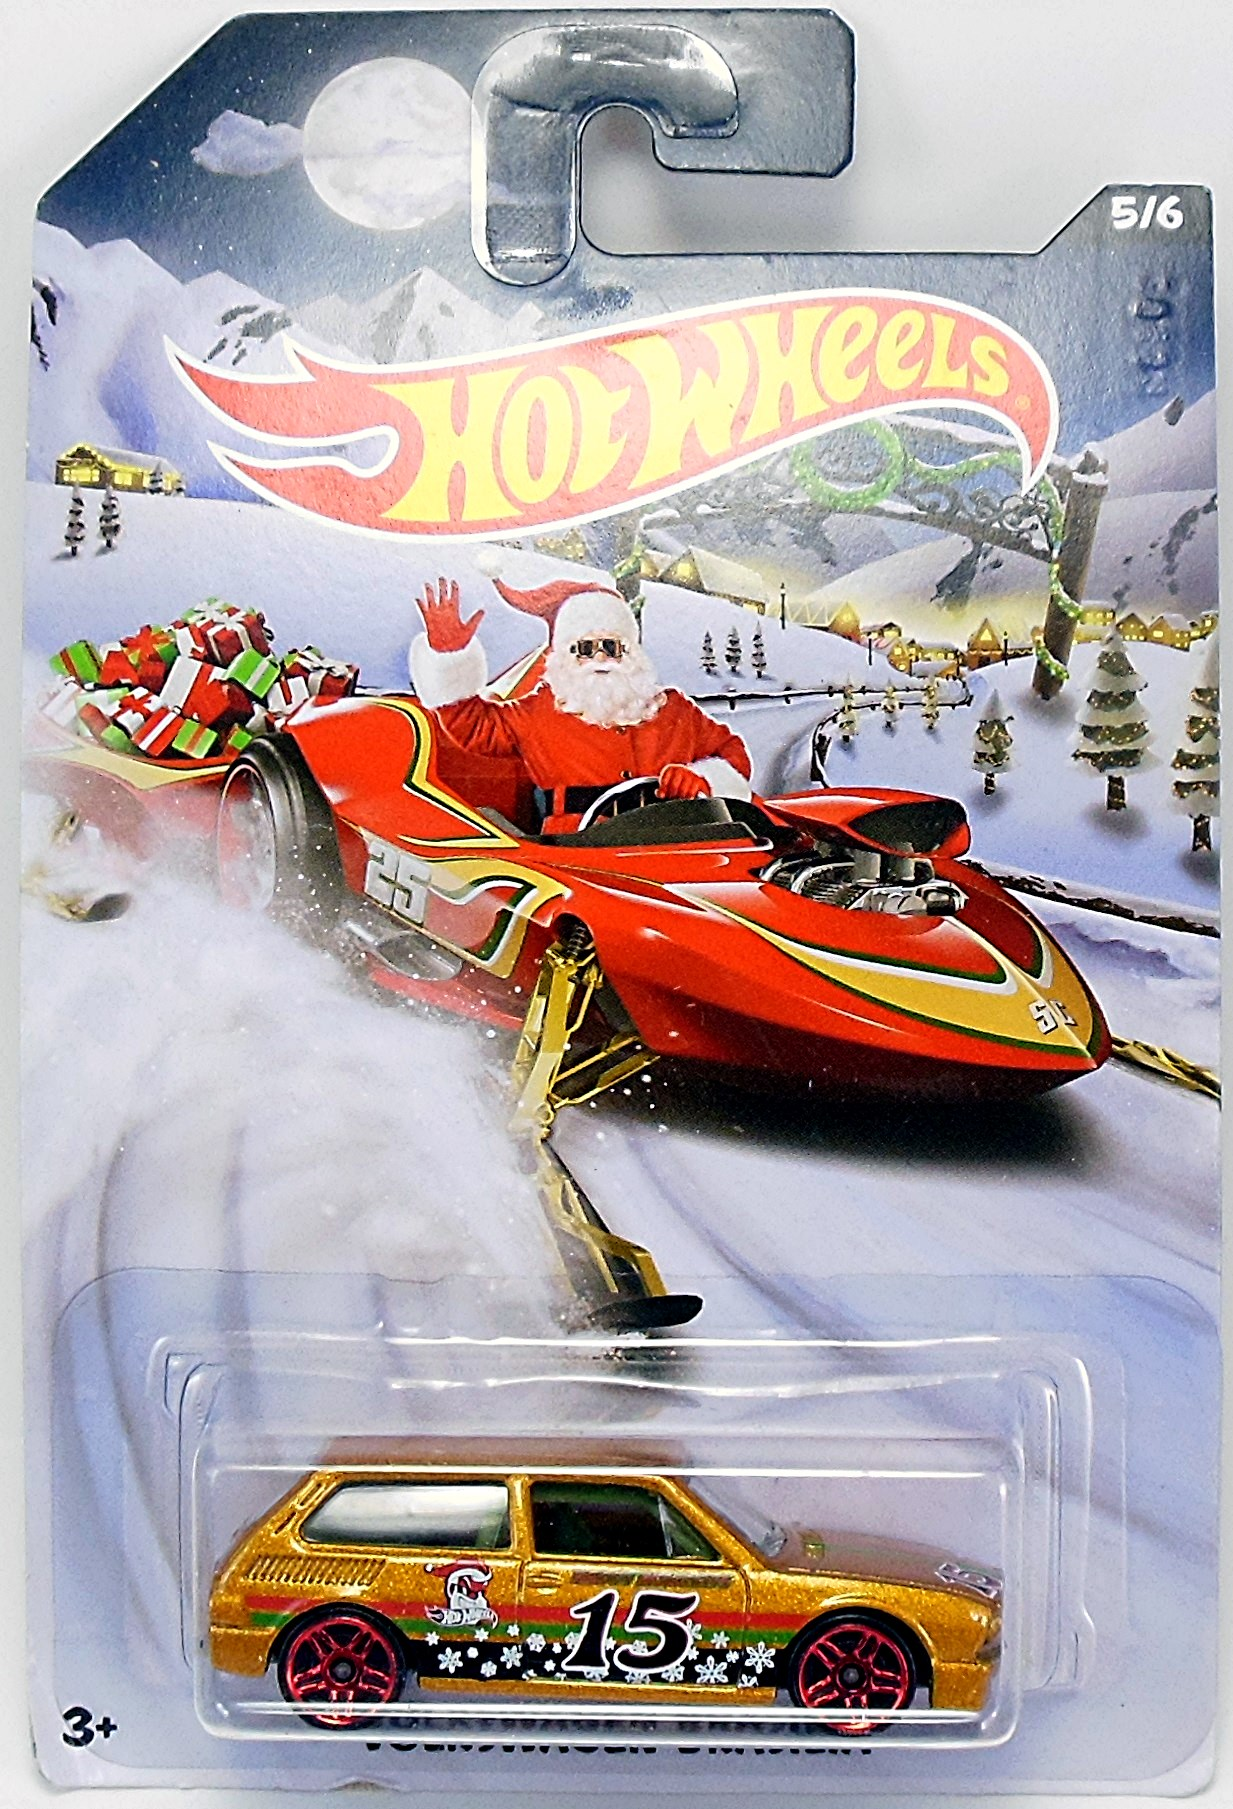 2015 Holiday Hot Rods | Hot Wheels Newsletter